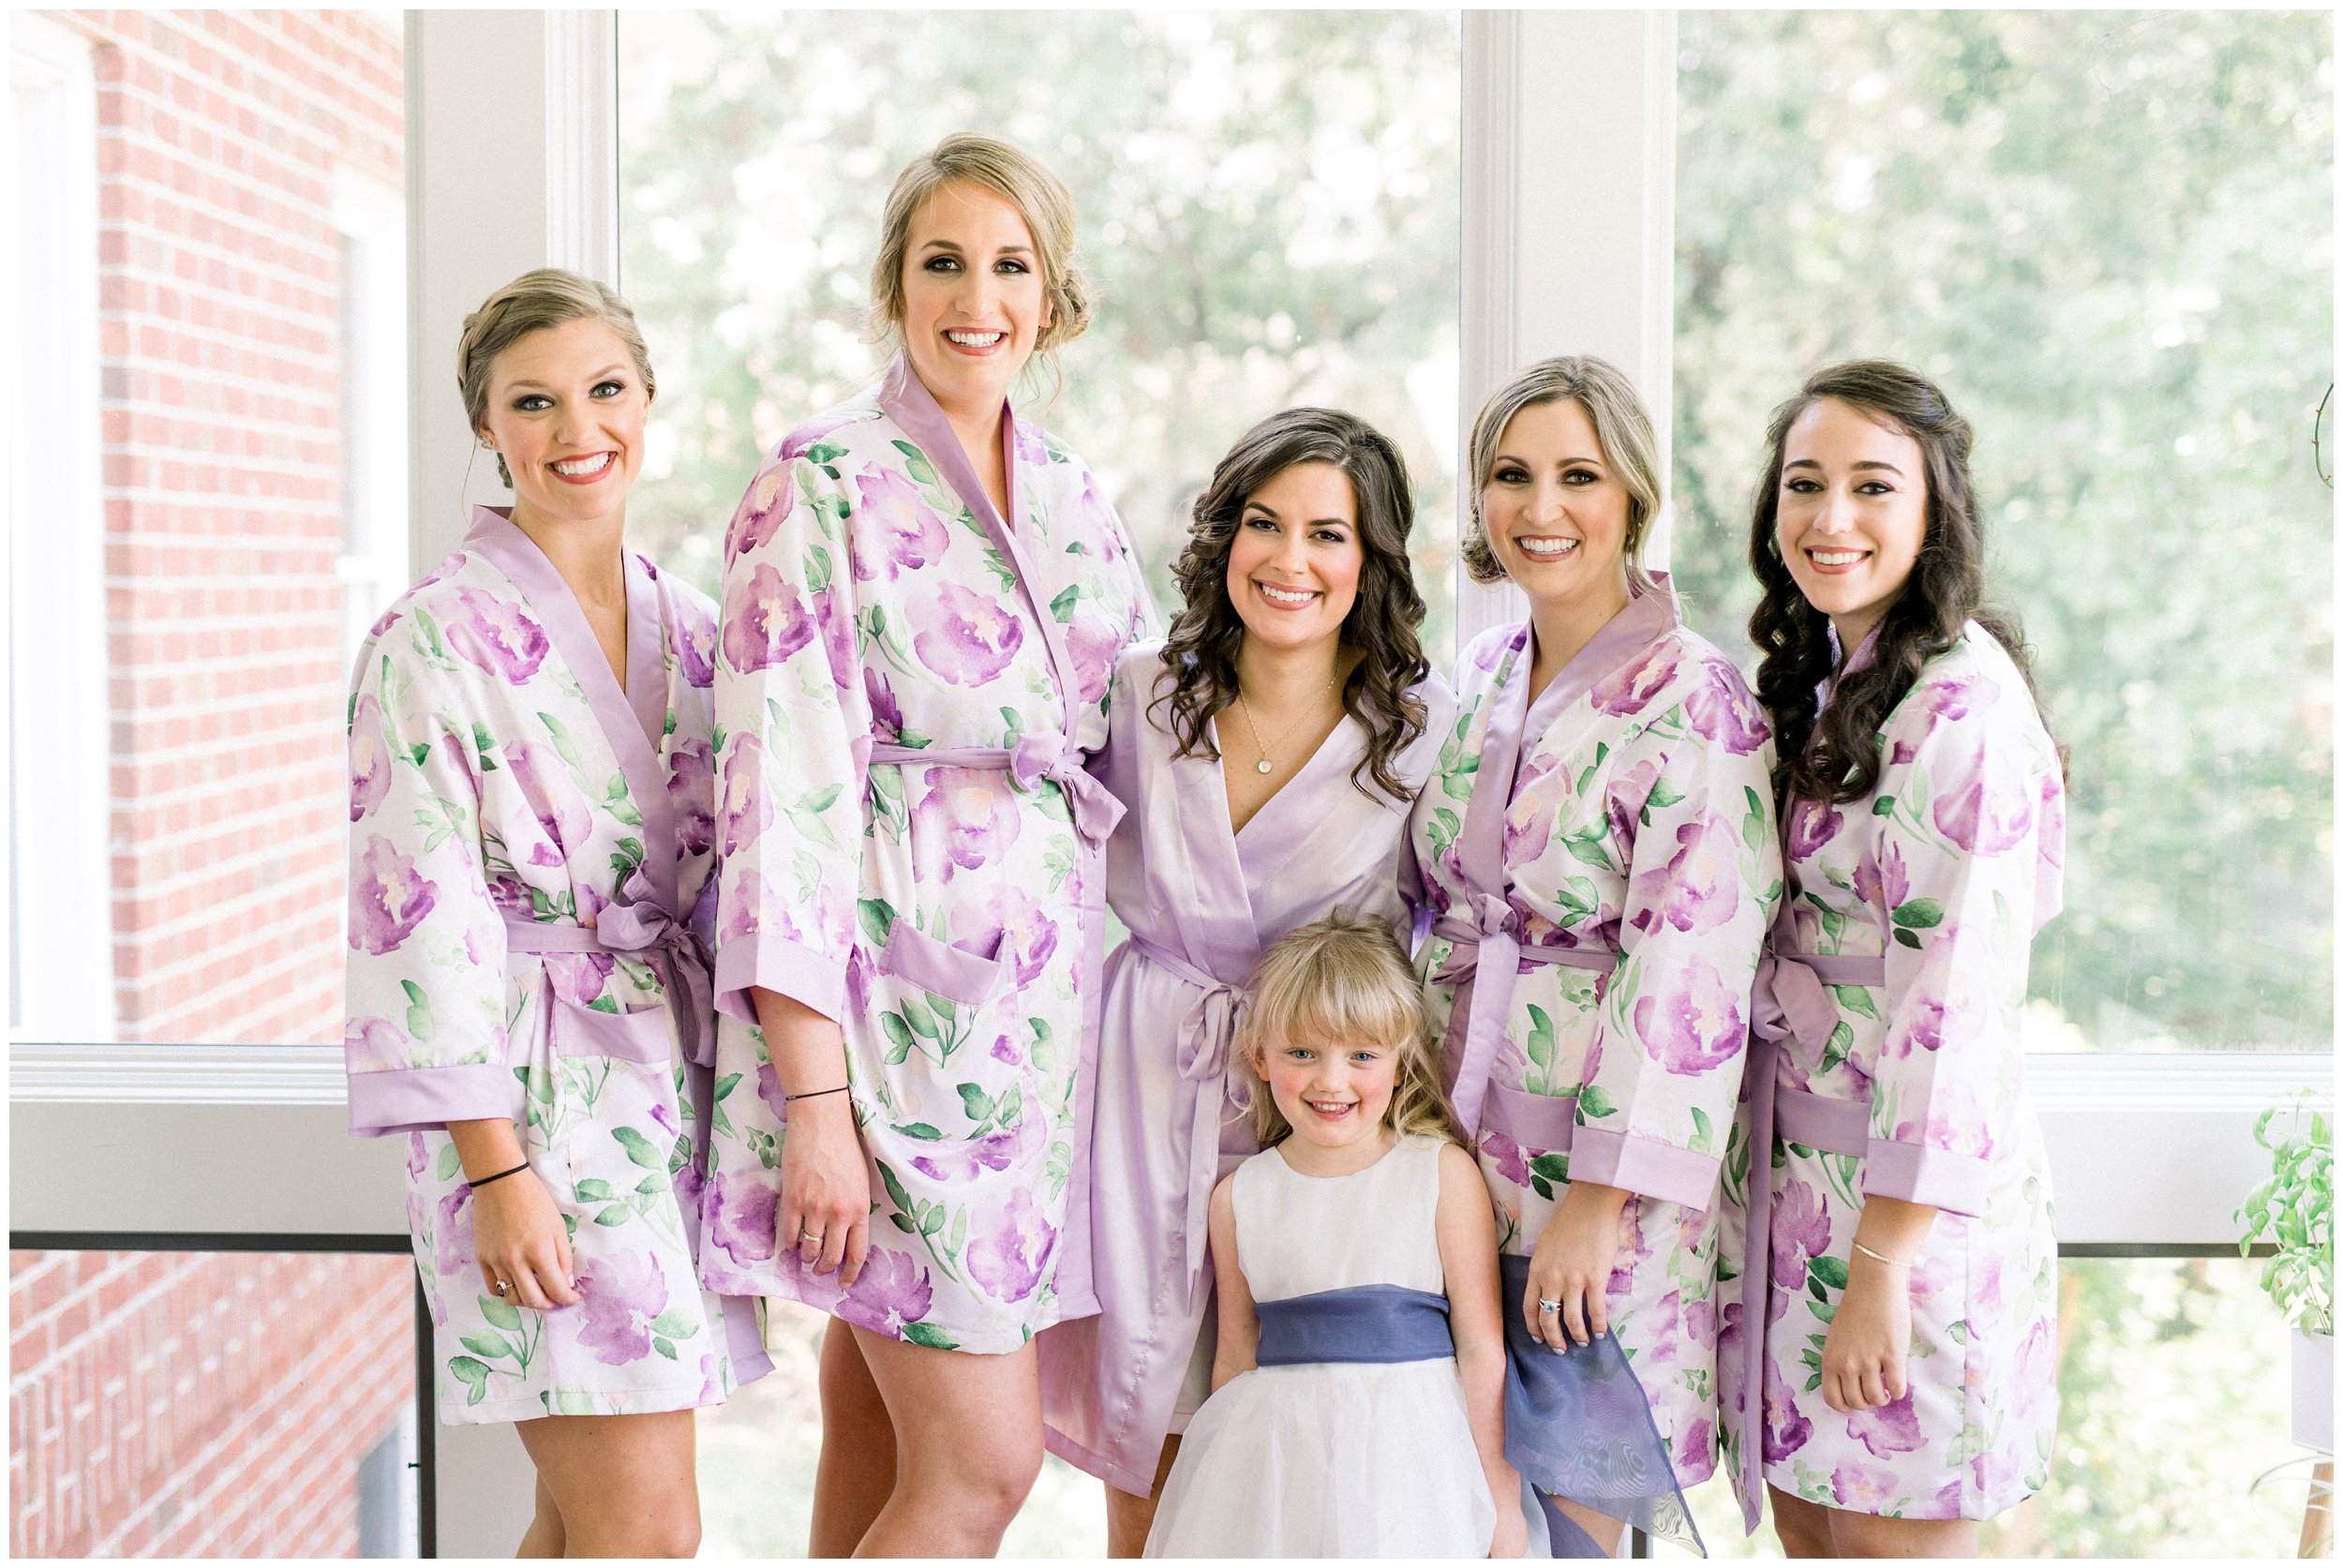 bridal party portraits in matching robes